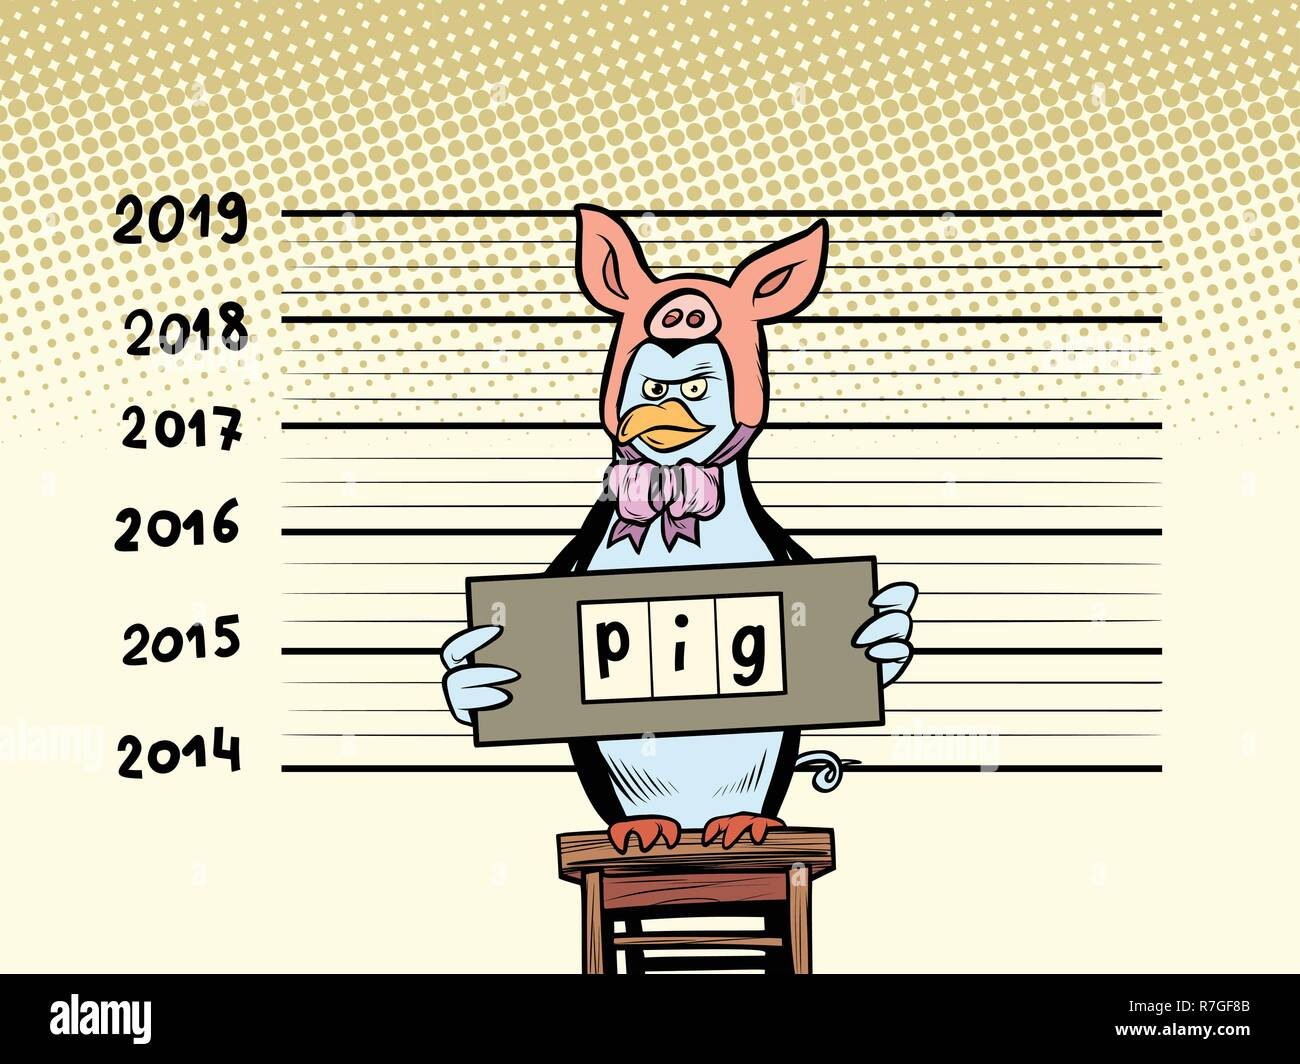 penguin arrested pretended to be a pig. 2019. happy New Year. Comic cartoon pop art retro vector illustration drawing - Stock Vector